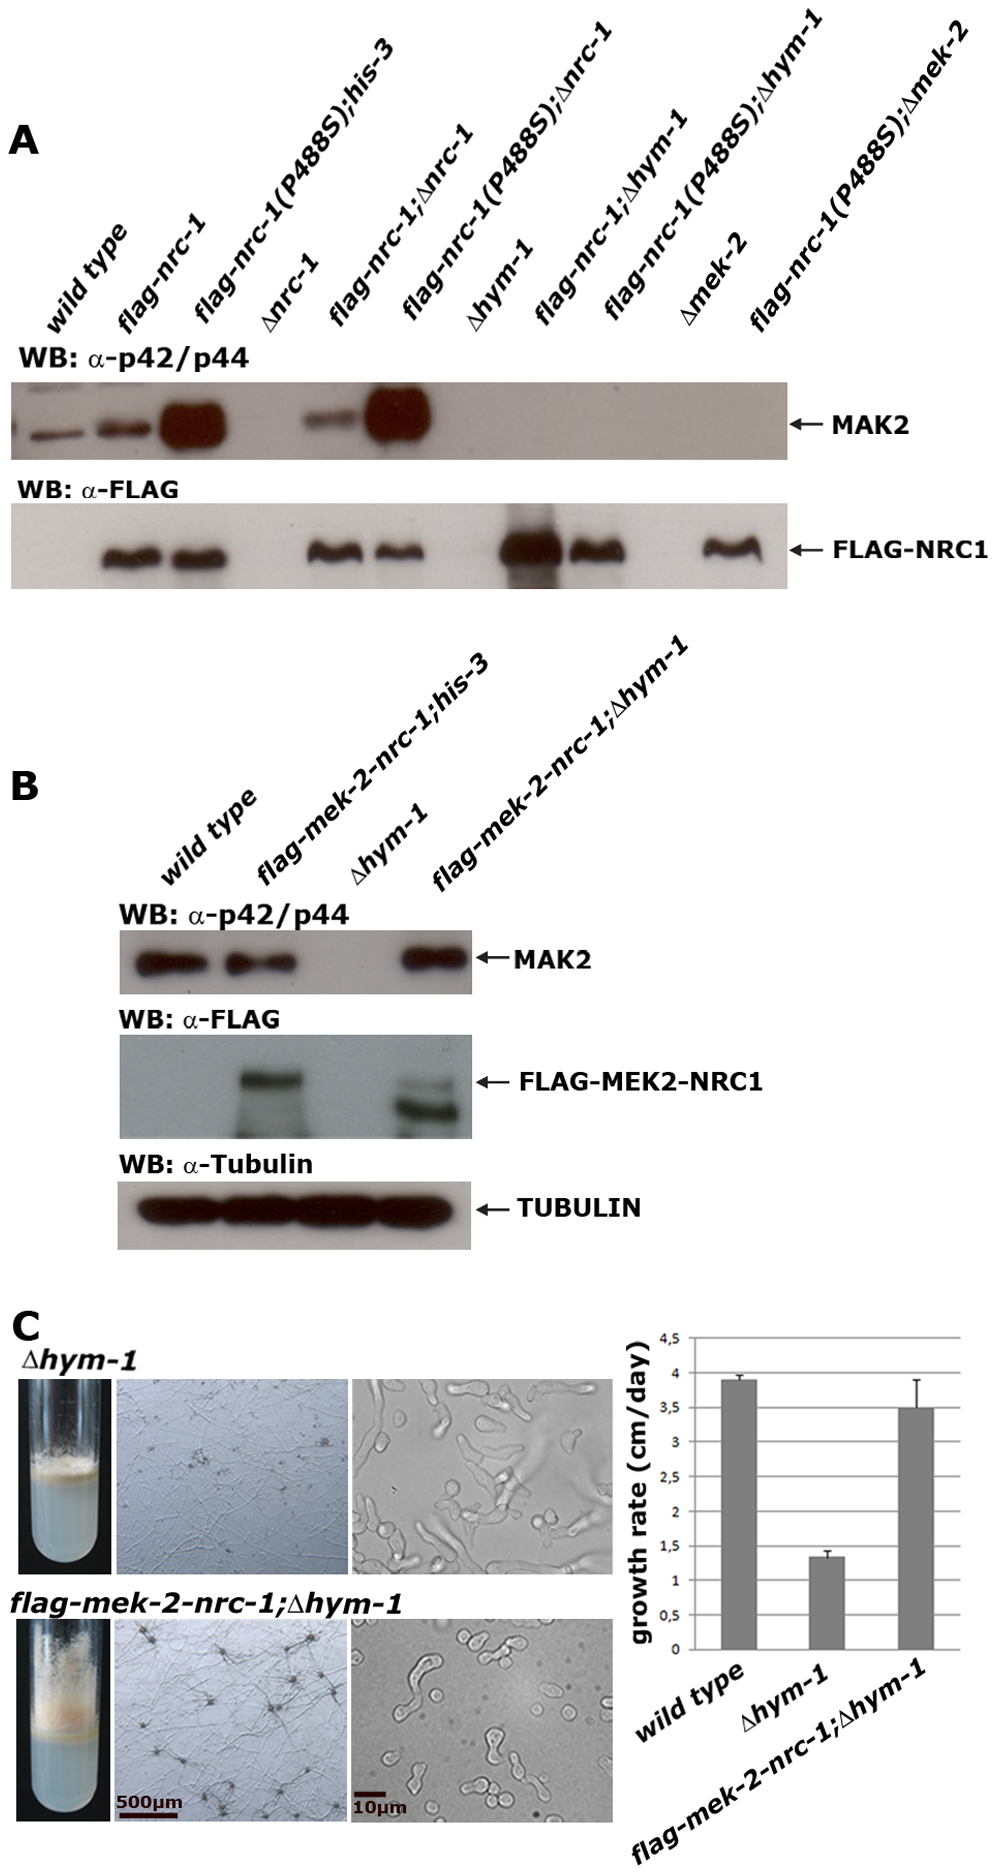 HYM1 is required for signal transduction through the entire MAK2 kinase cascade.